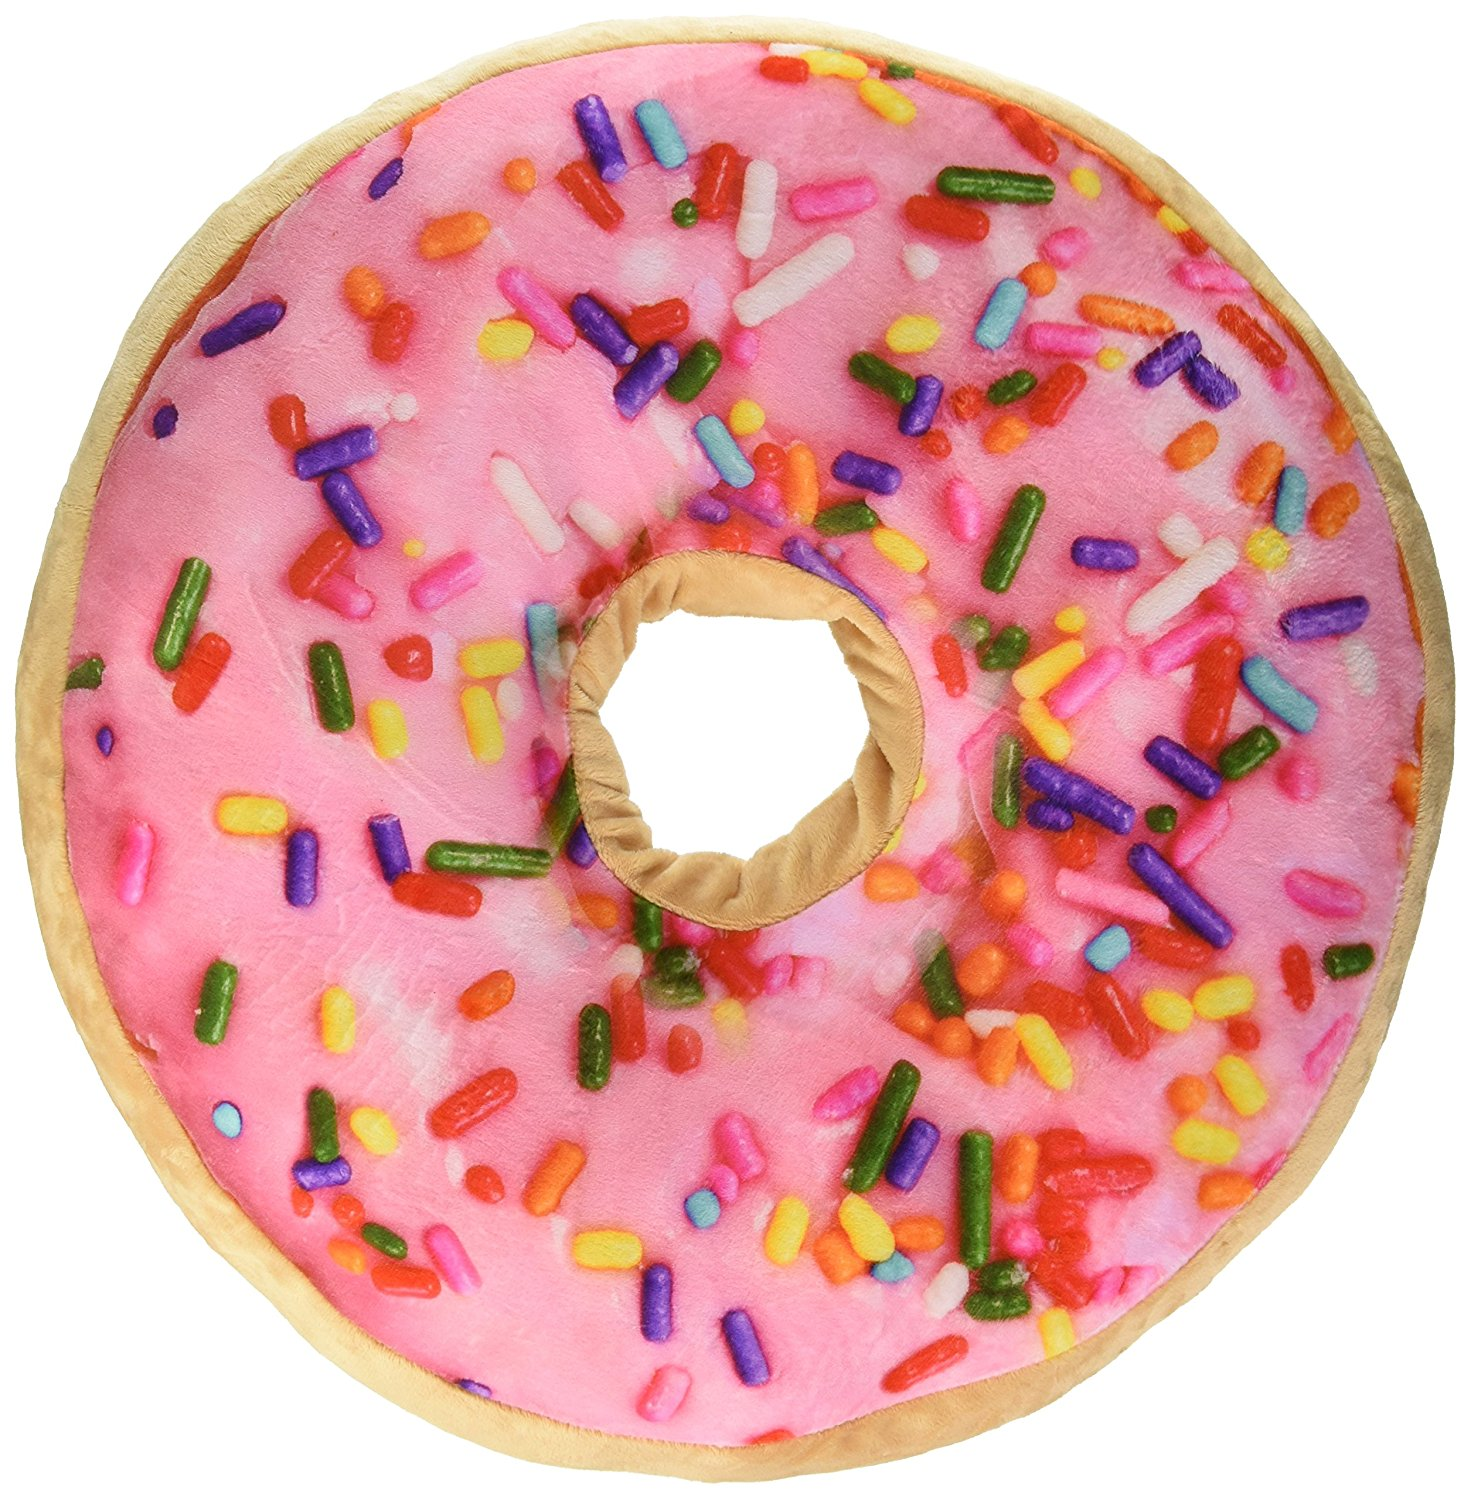 Scented Sprinkle Donut 16 Quot Pillow Strawberry Walmart Com